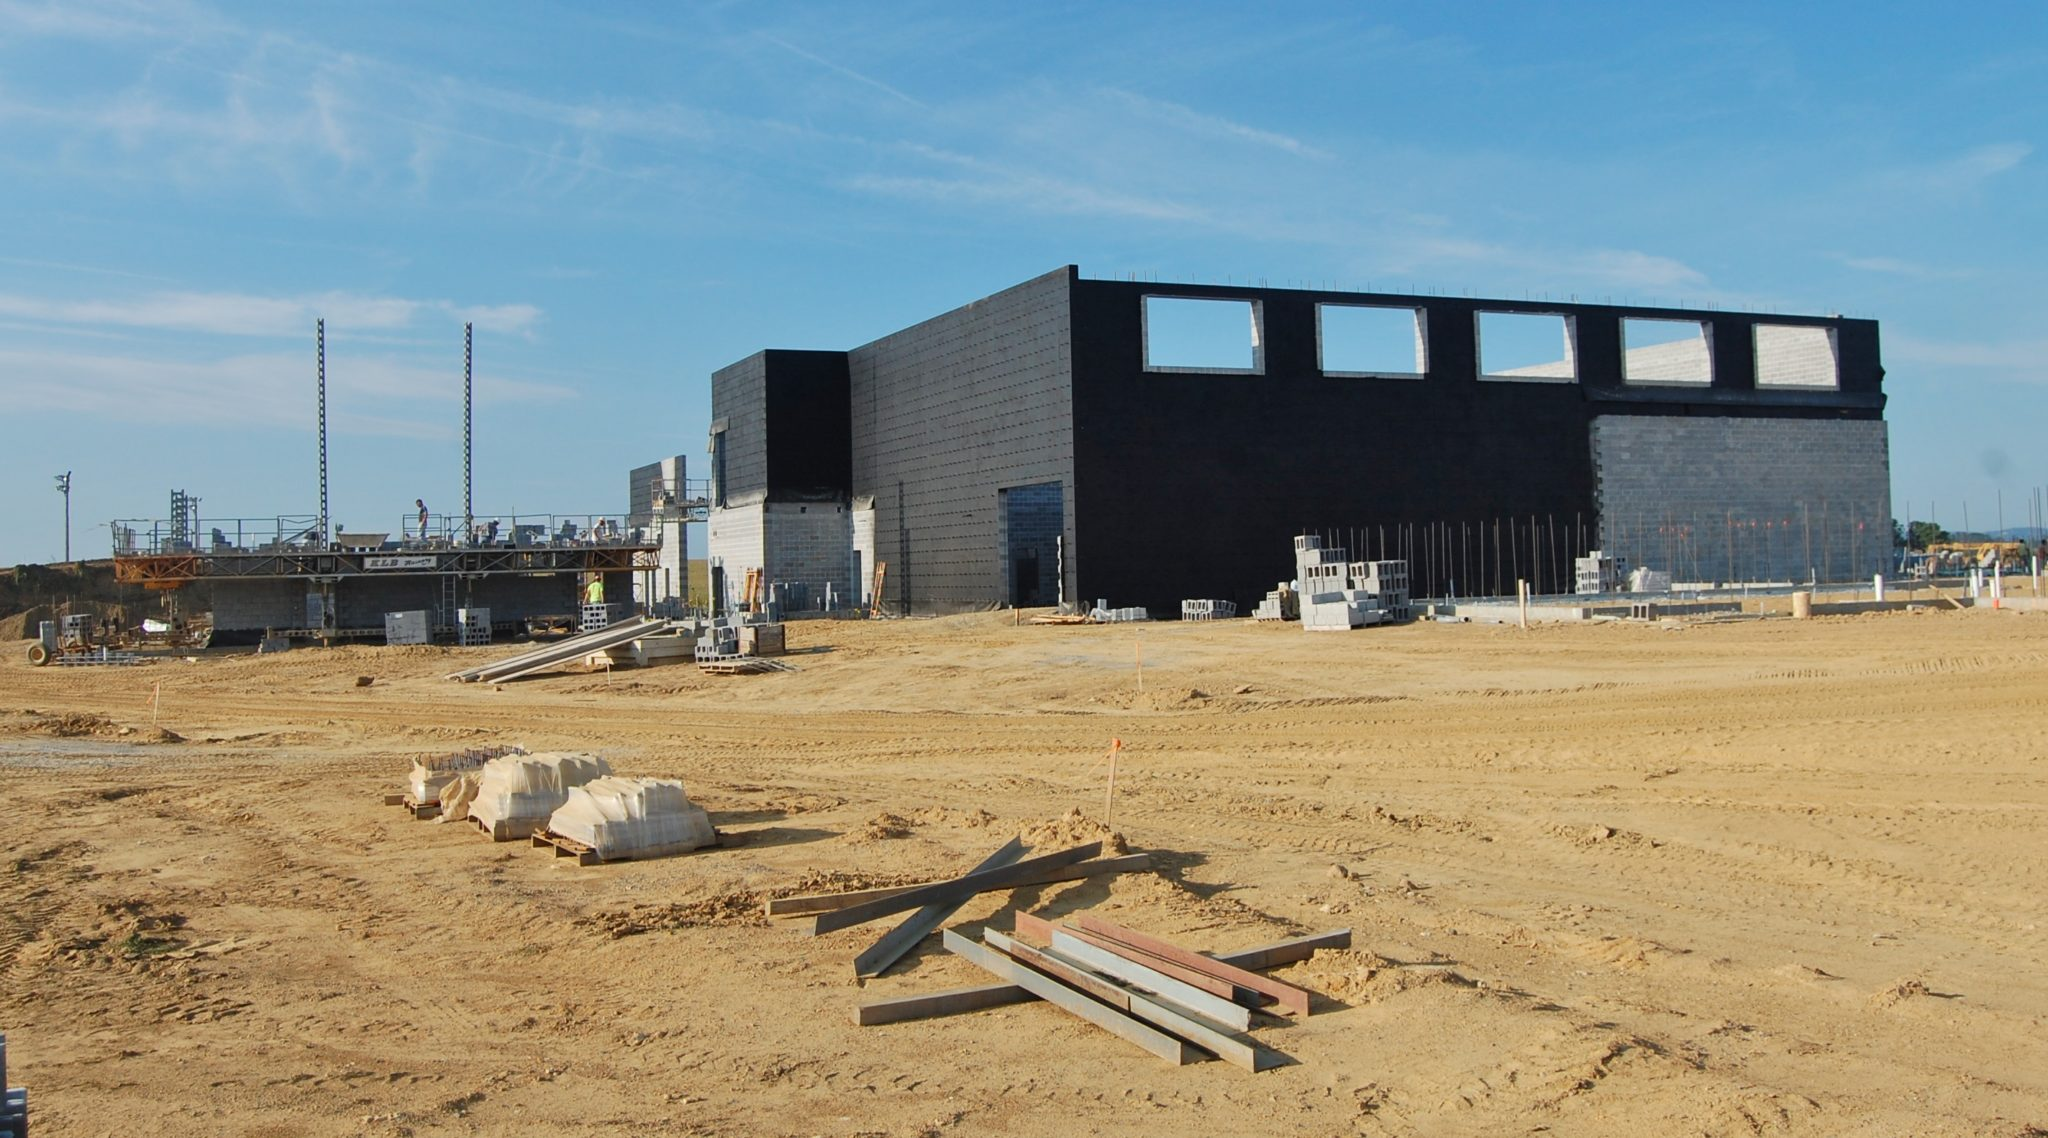 Construction continues on new Hambright Elementary School